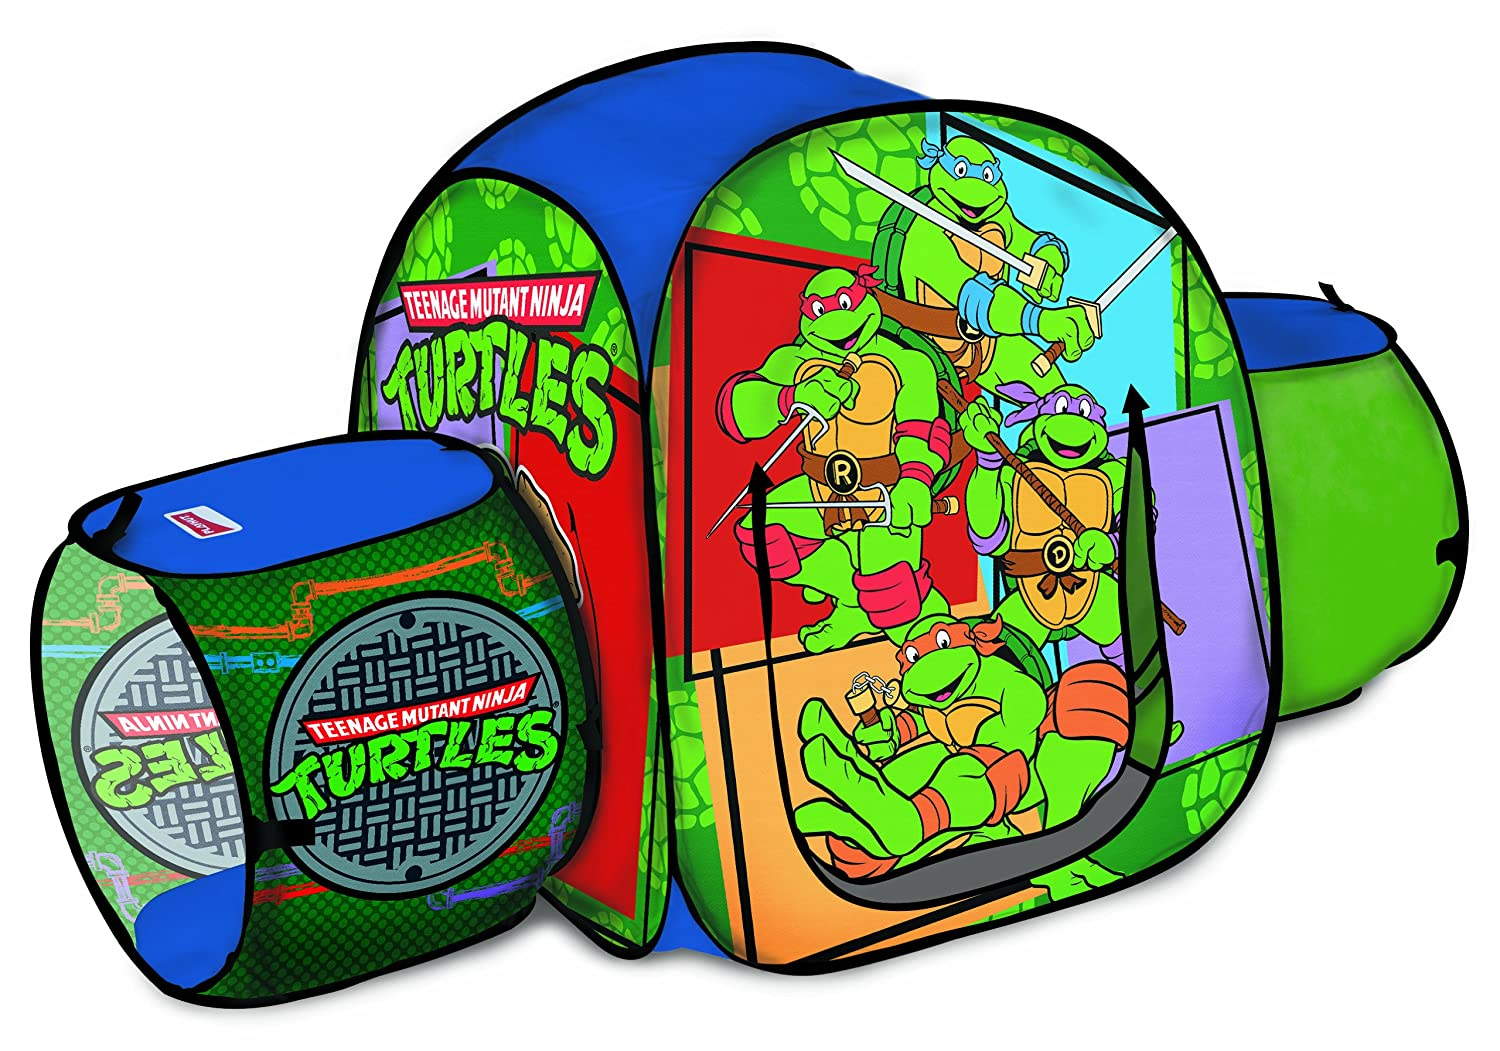 Amazon.com Playhut Teenage Hide u0027N Crawl Mutant Ninja Turtles Tent Toys u0026 Games  sc 1 st  Amazon.com & Amazon.com: Playhut Teenage Hide u0027N Crawl Mutant Ninja Turtles ...